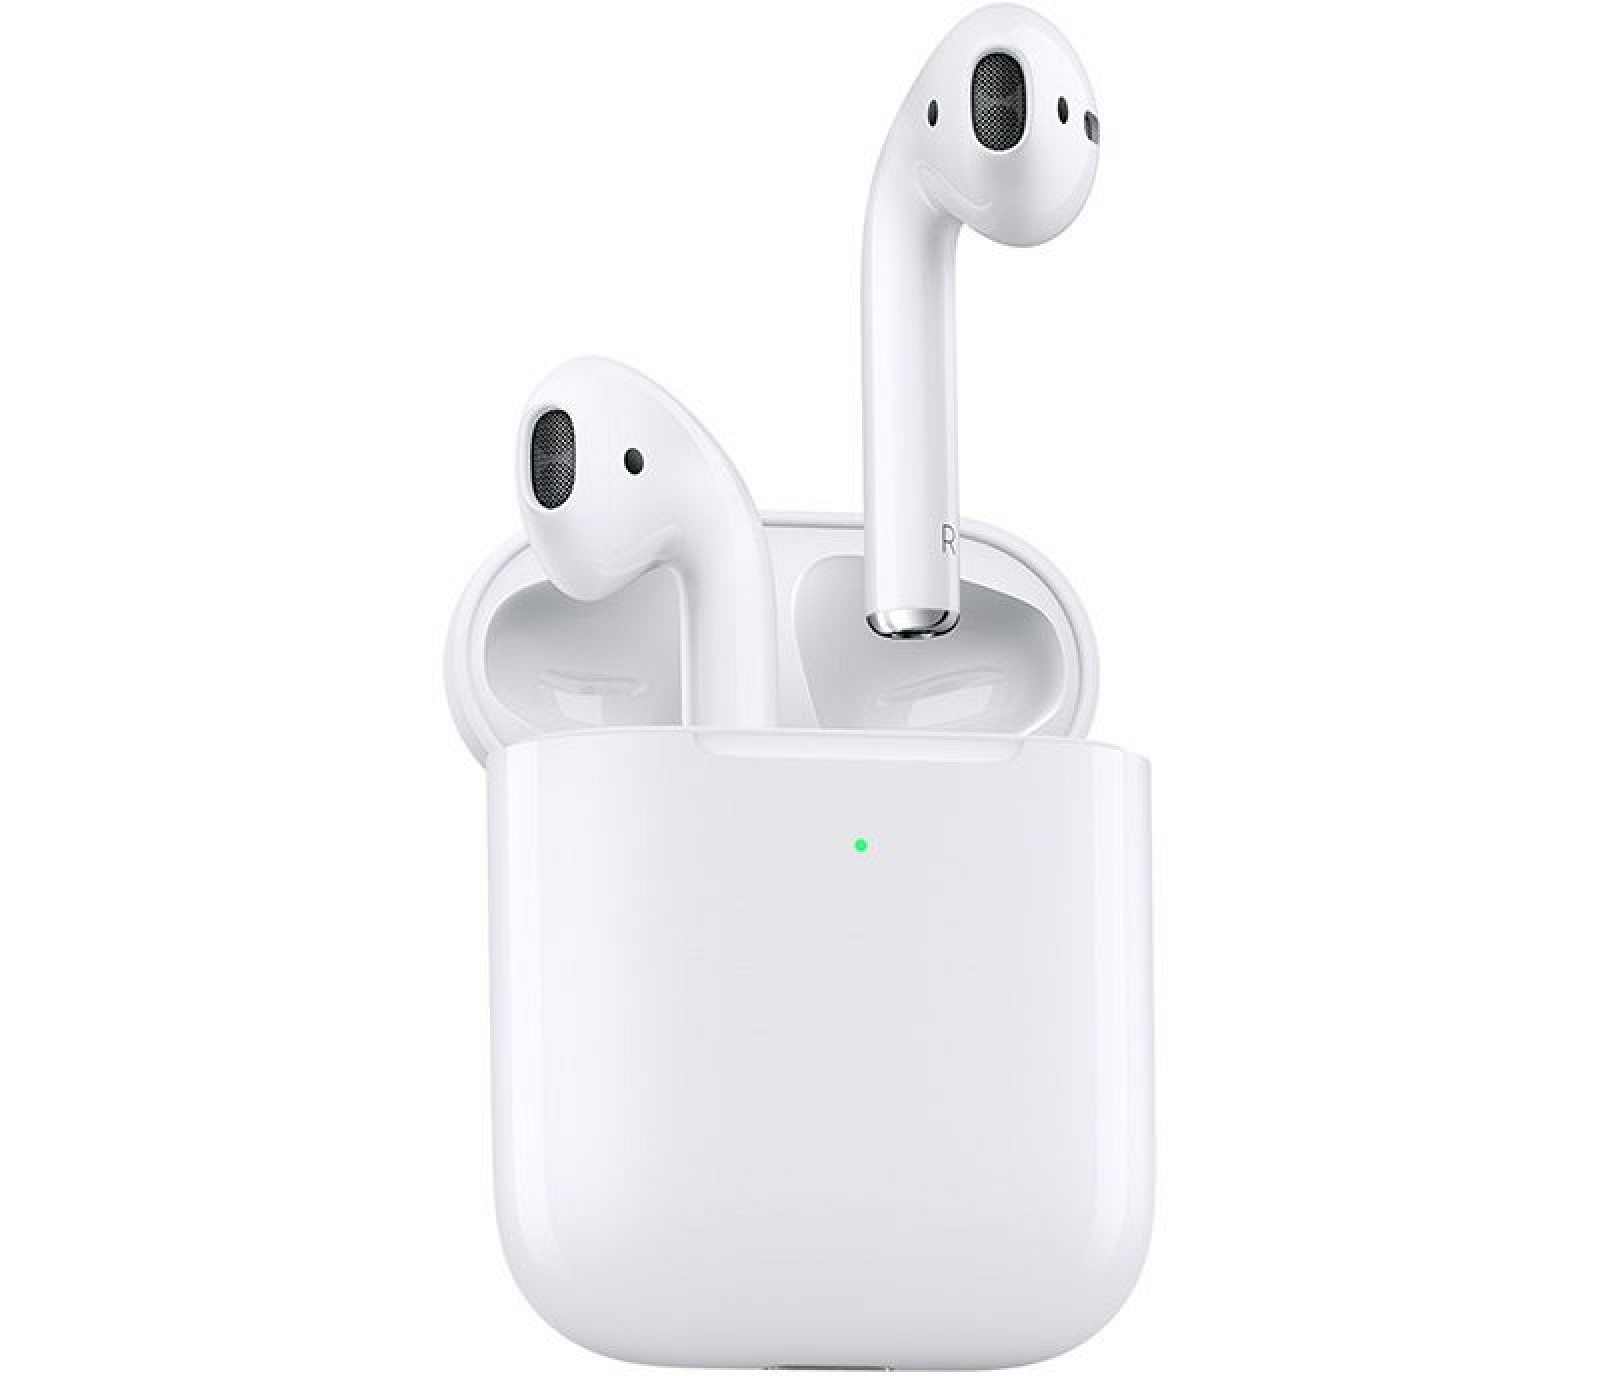 New AirPods Vs. Old AirPods Comparison